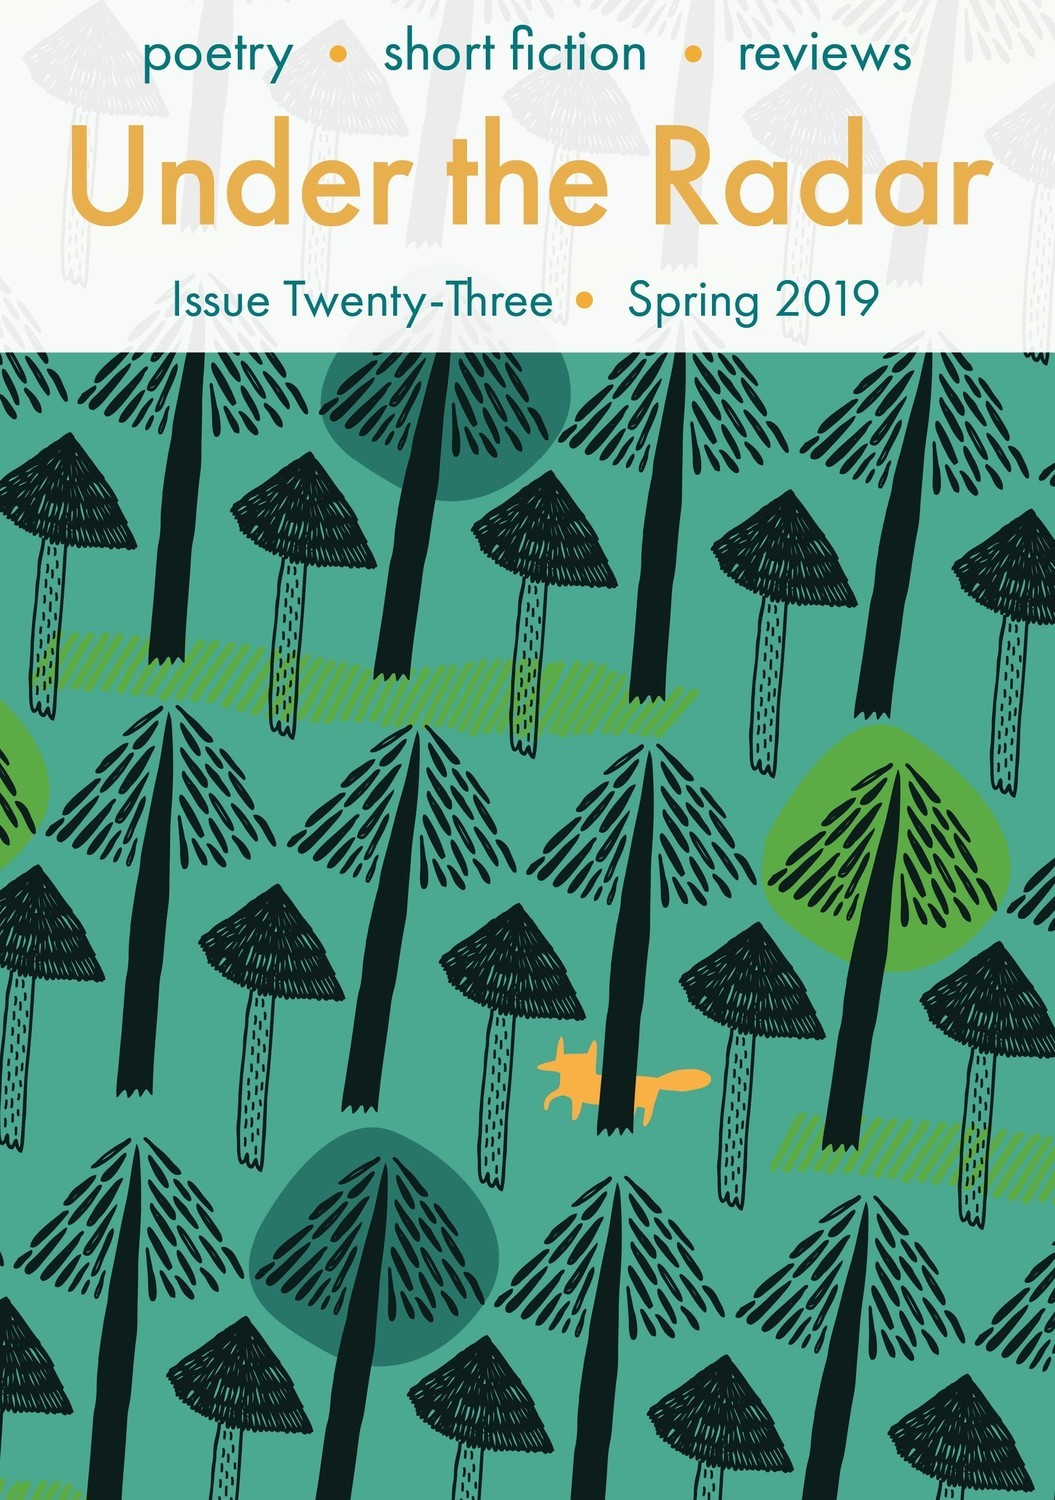 Under the Radar Issue 23 Spring 2019 (single issue)